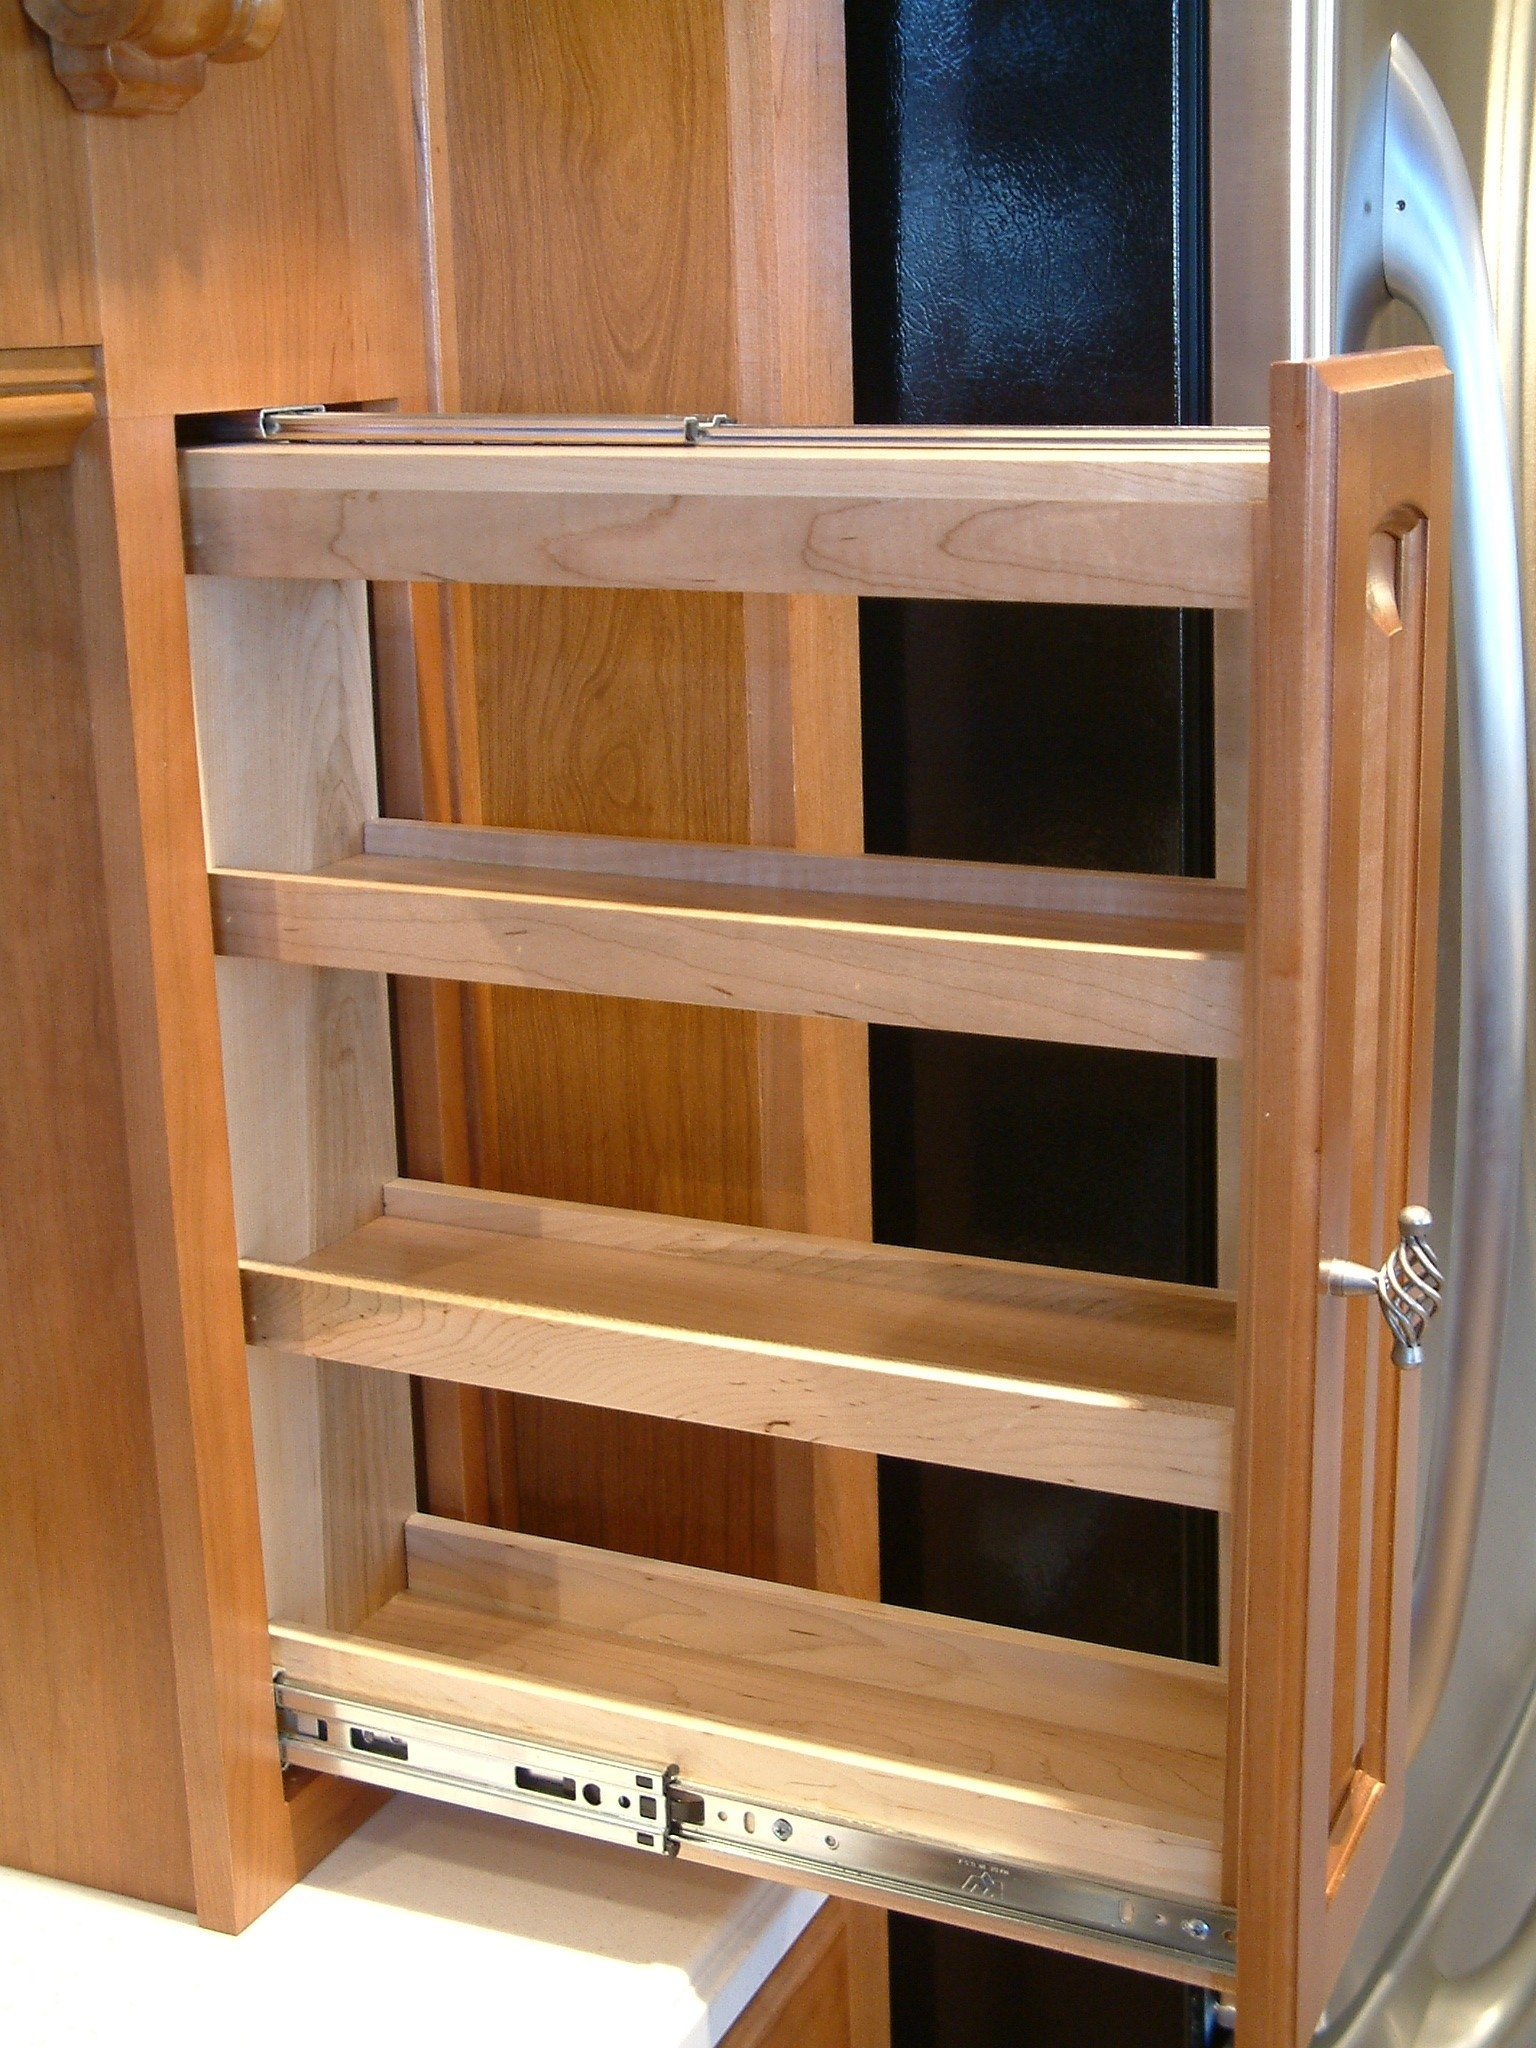 Permalink to Pull Out Spice Racks For Upper Kitchen Cabinets